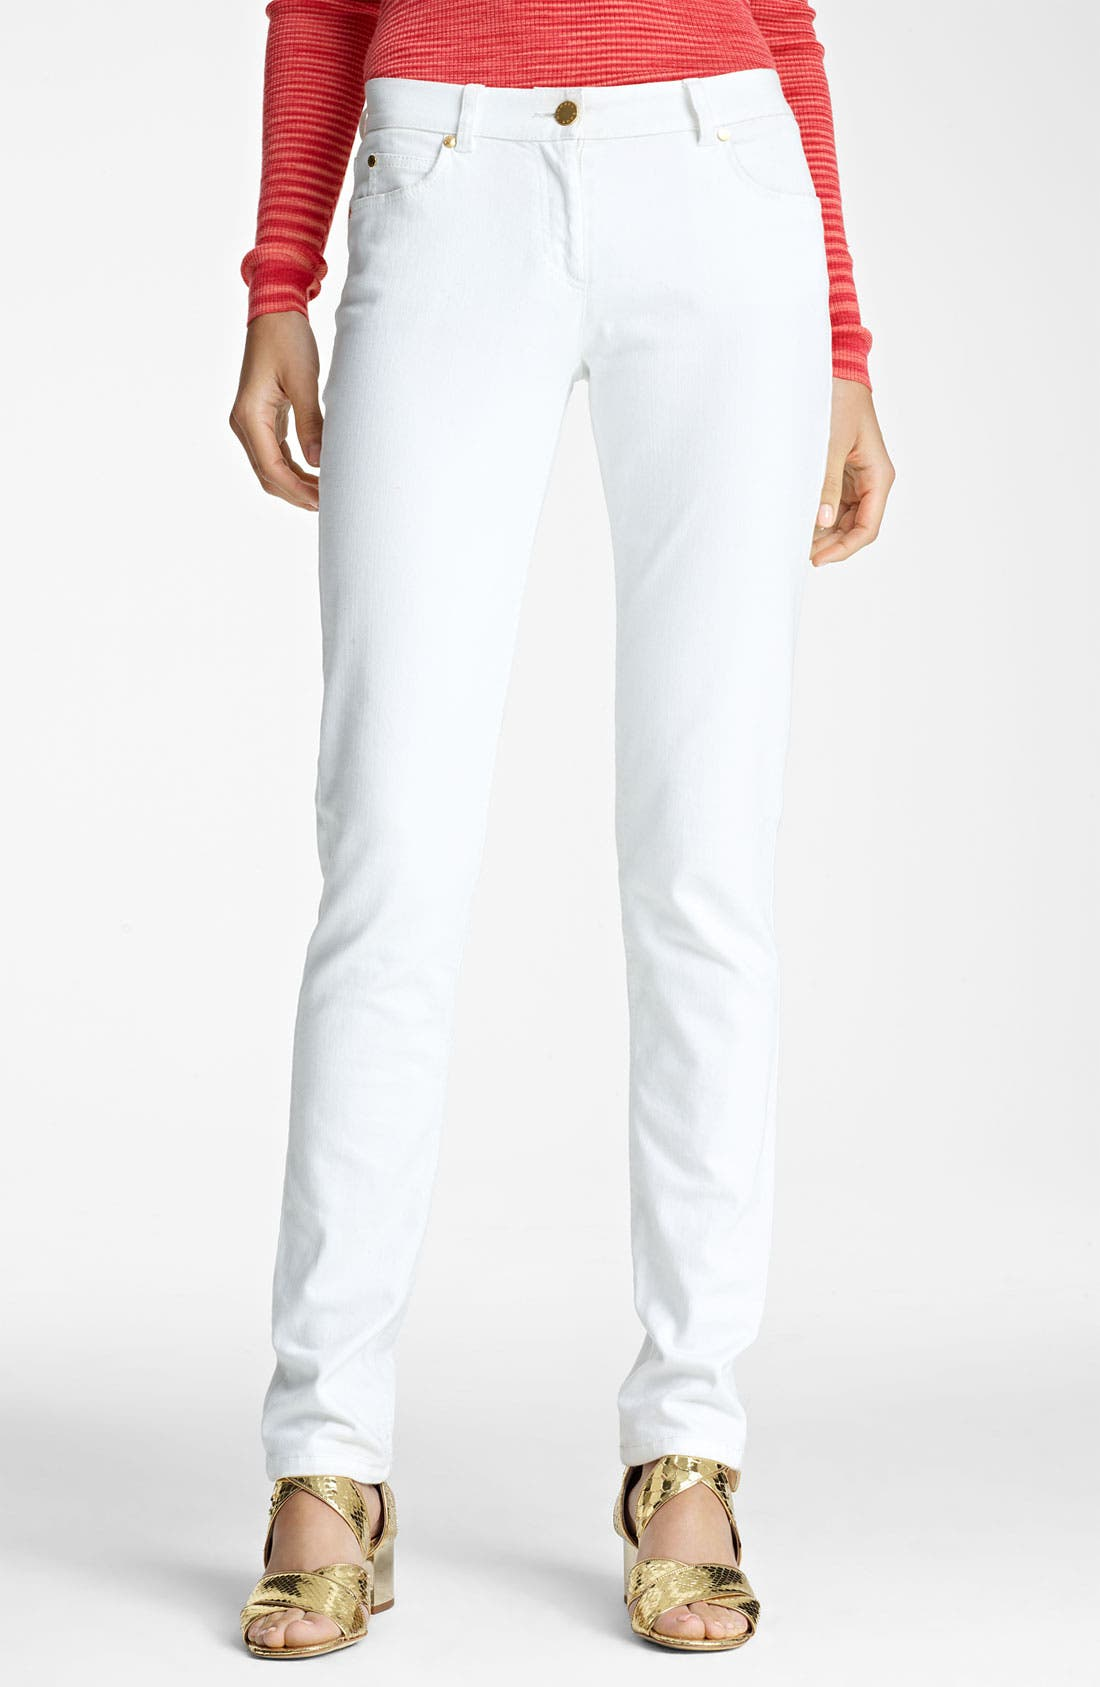 Main Image - Michael Kors Stovepipe Stretch Jeans